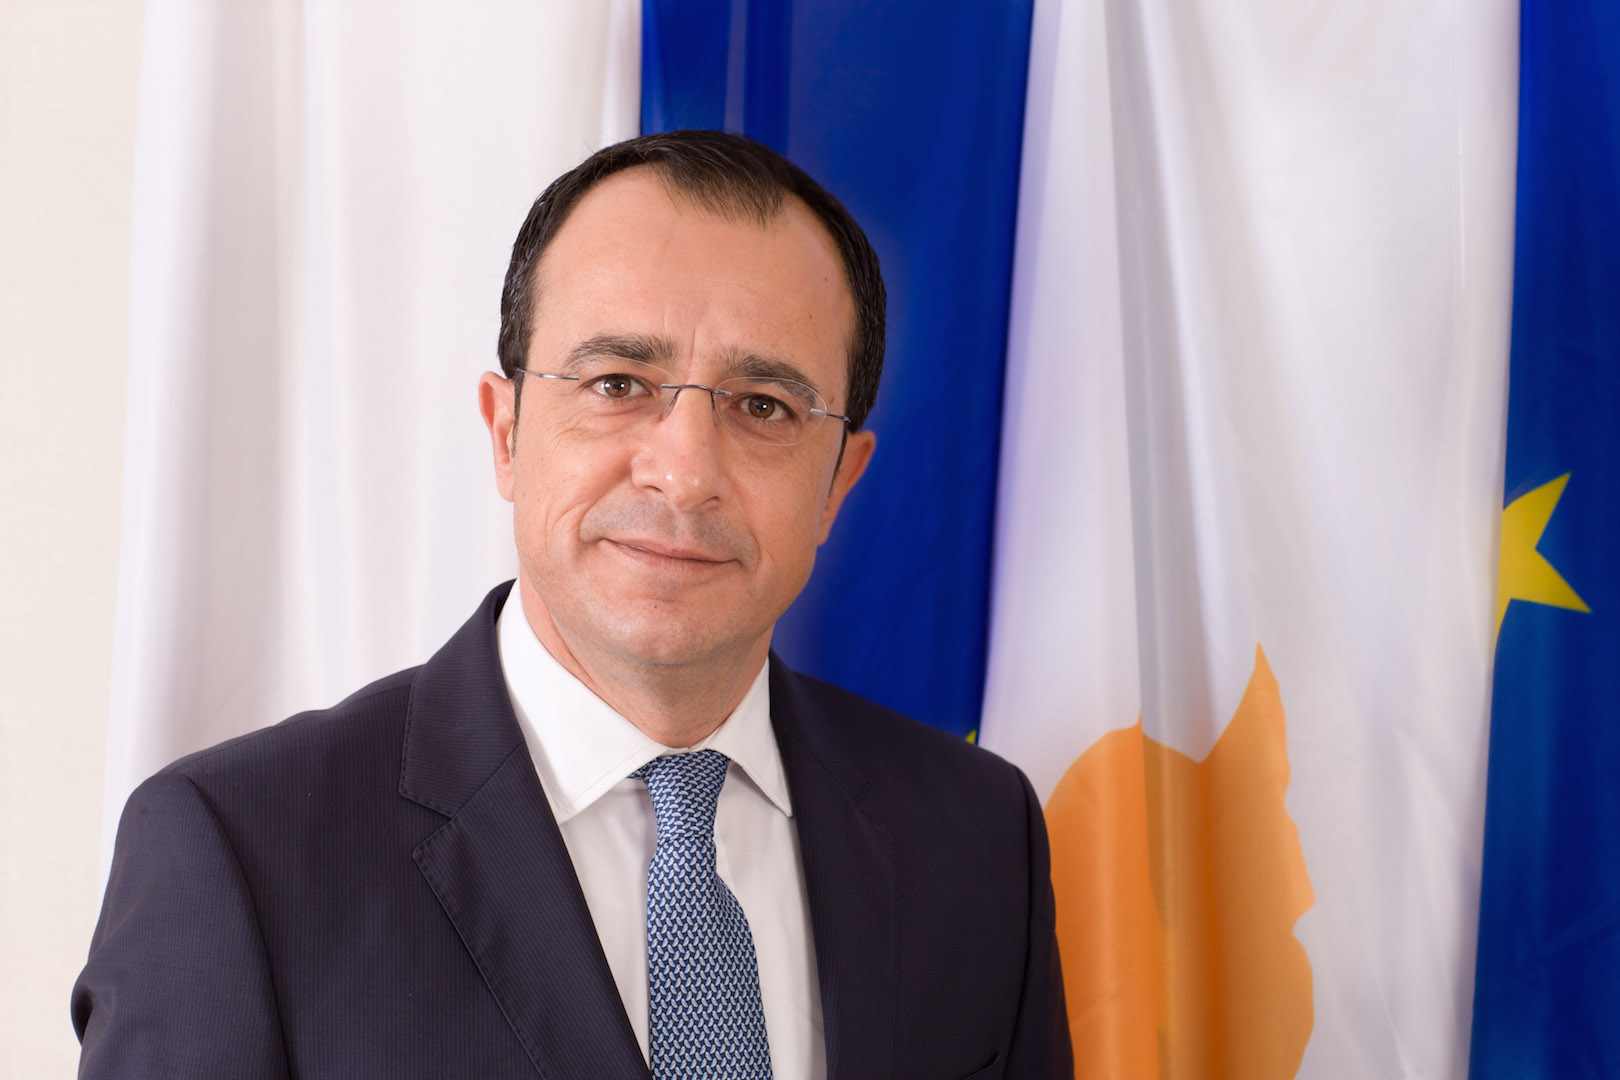 Christodoulides departs for a working visit in Norway